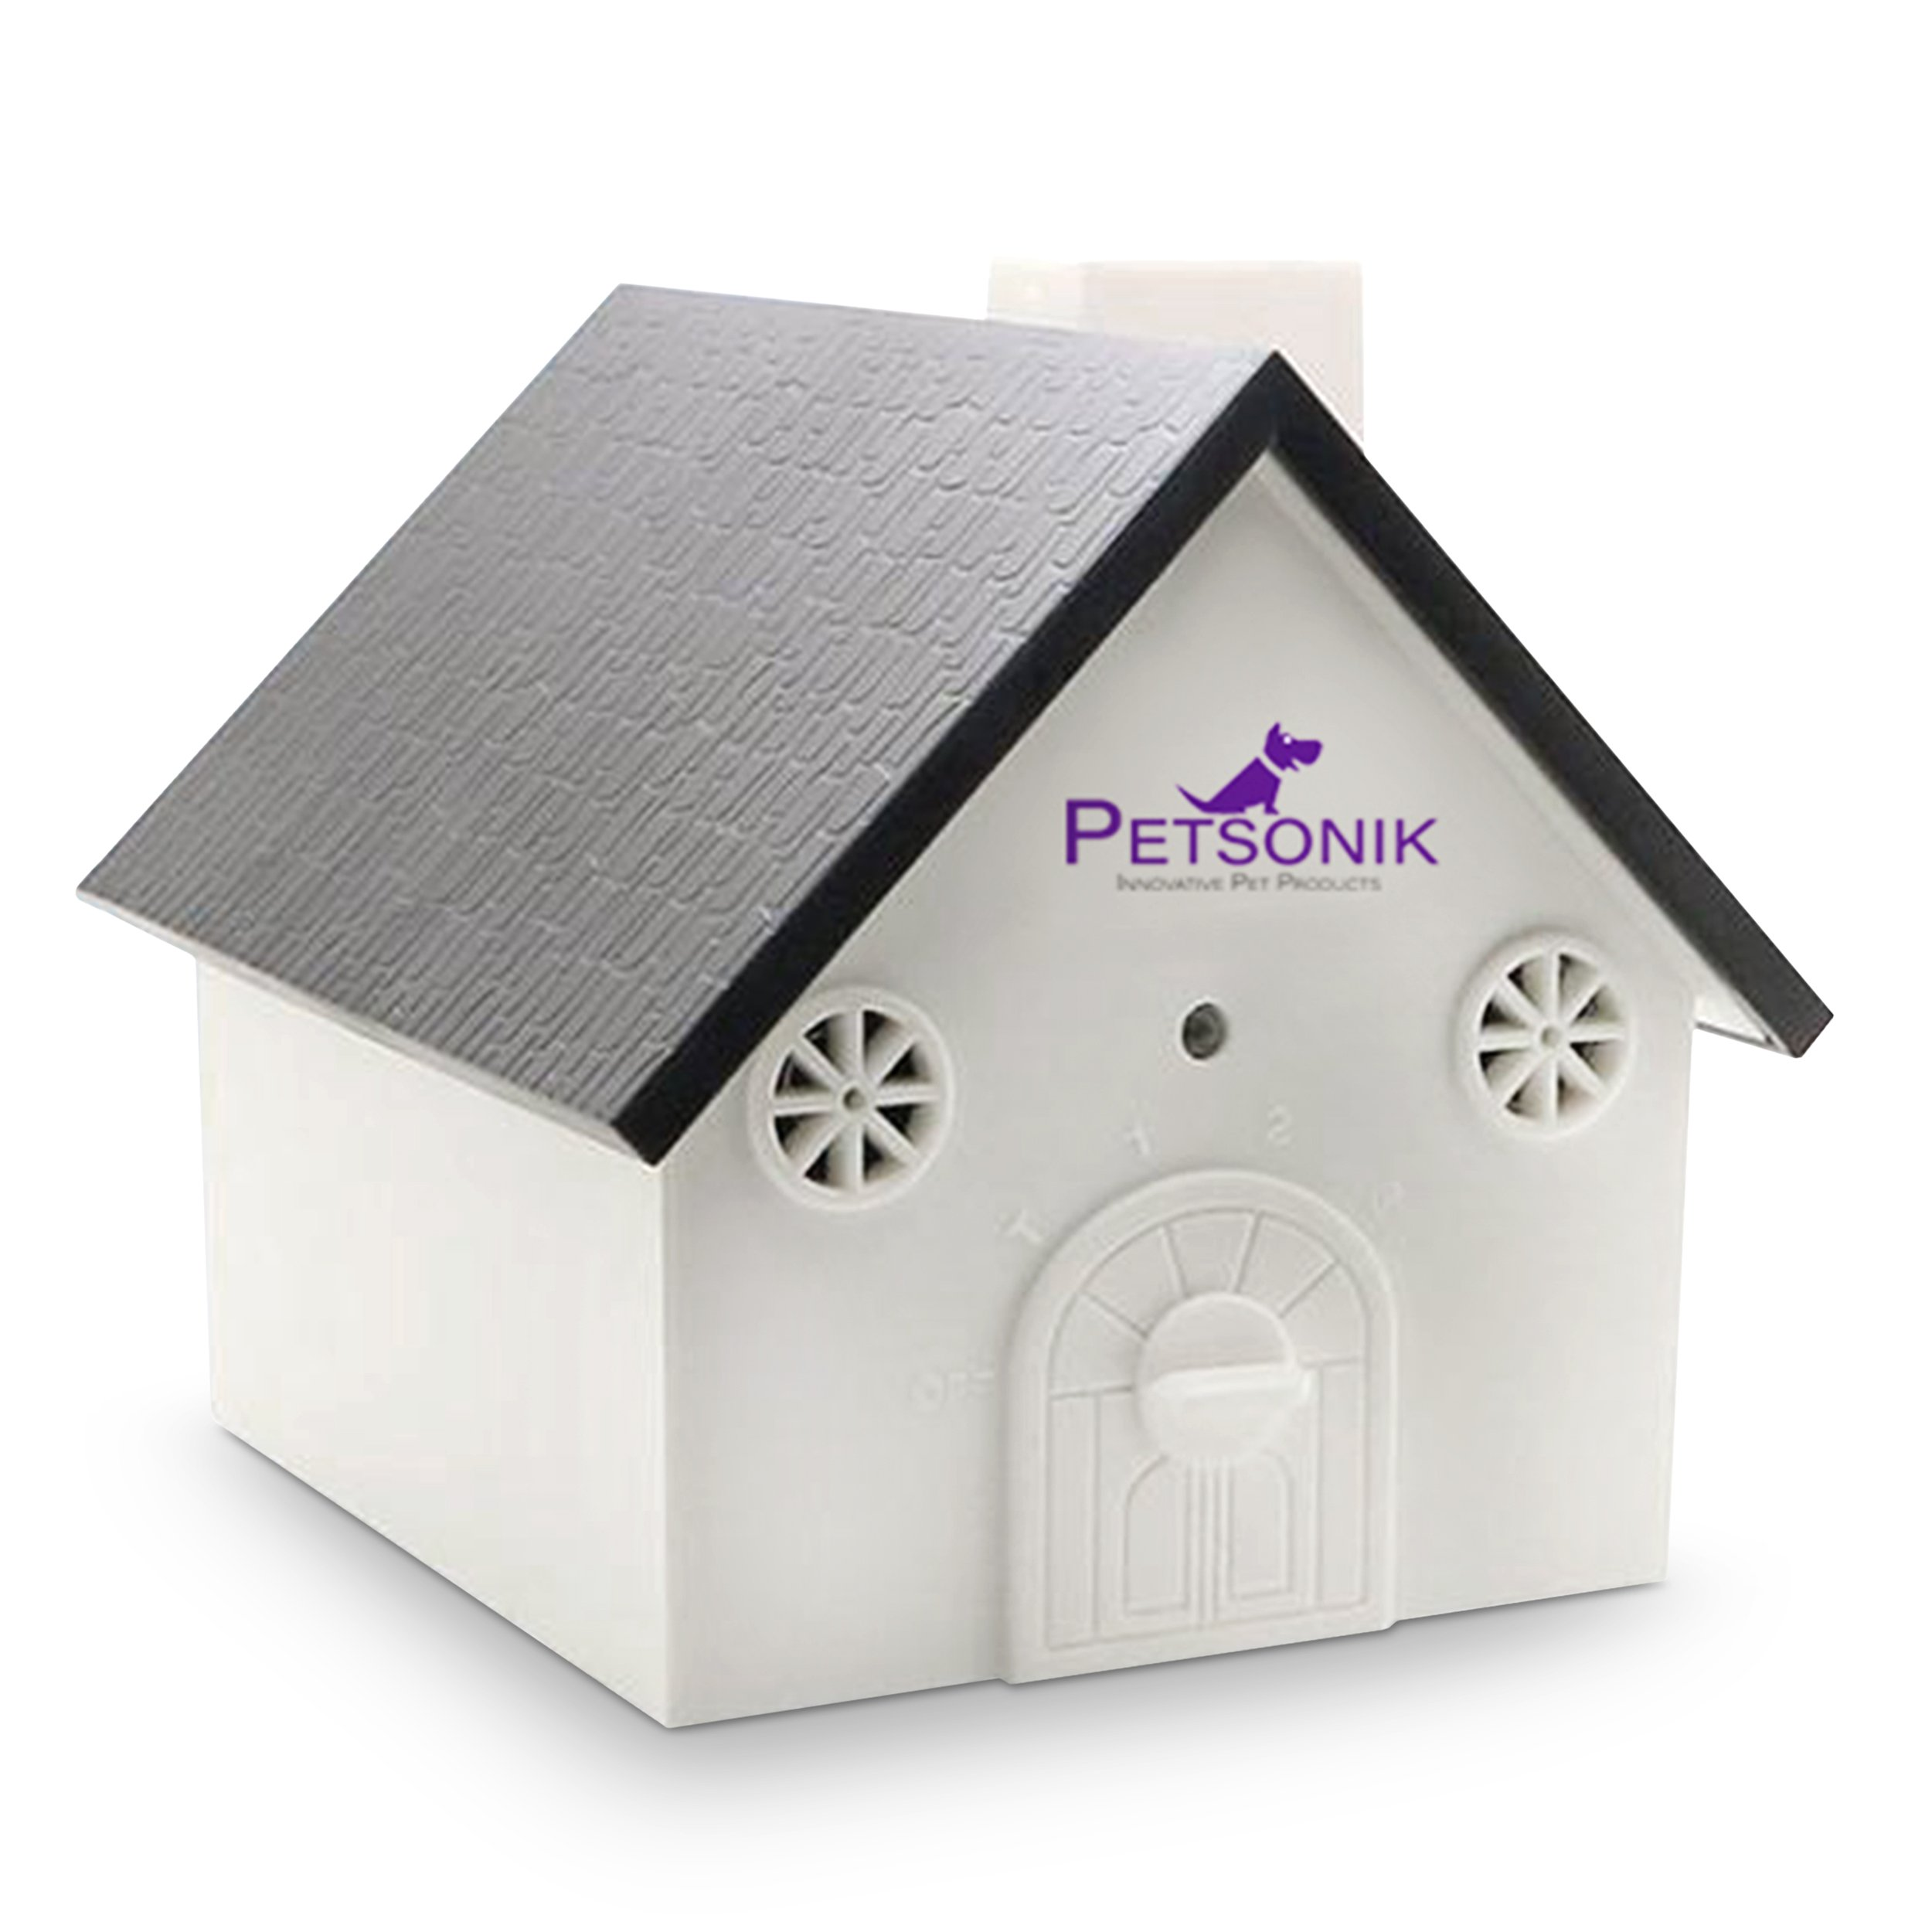 Petsonik Ultrasonic Dog Barking Control Devices in Birdhouse Shape Instantly Regain Your Peace of Mind, Includes Free E-Book on Tips | Outdoor Bark Box - No Harm to Dog | Upgraded Version by Petsonik